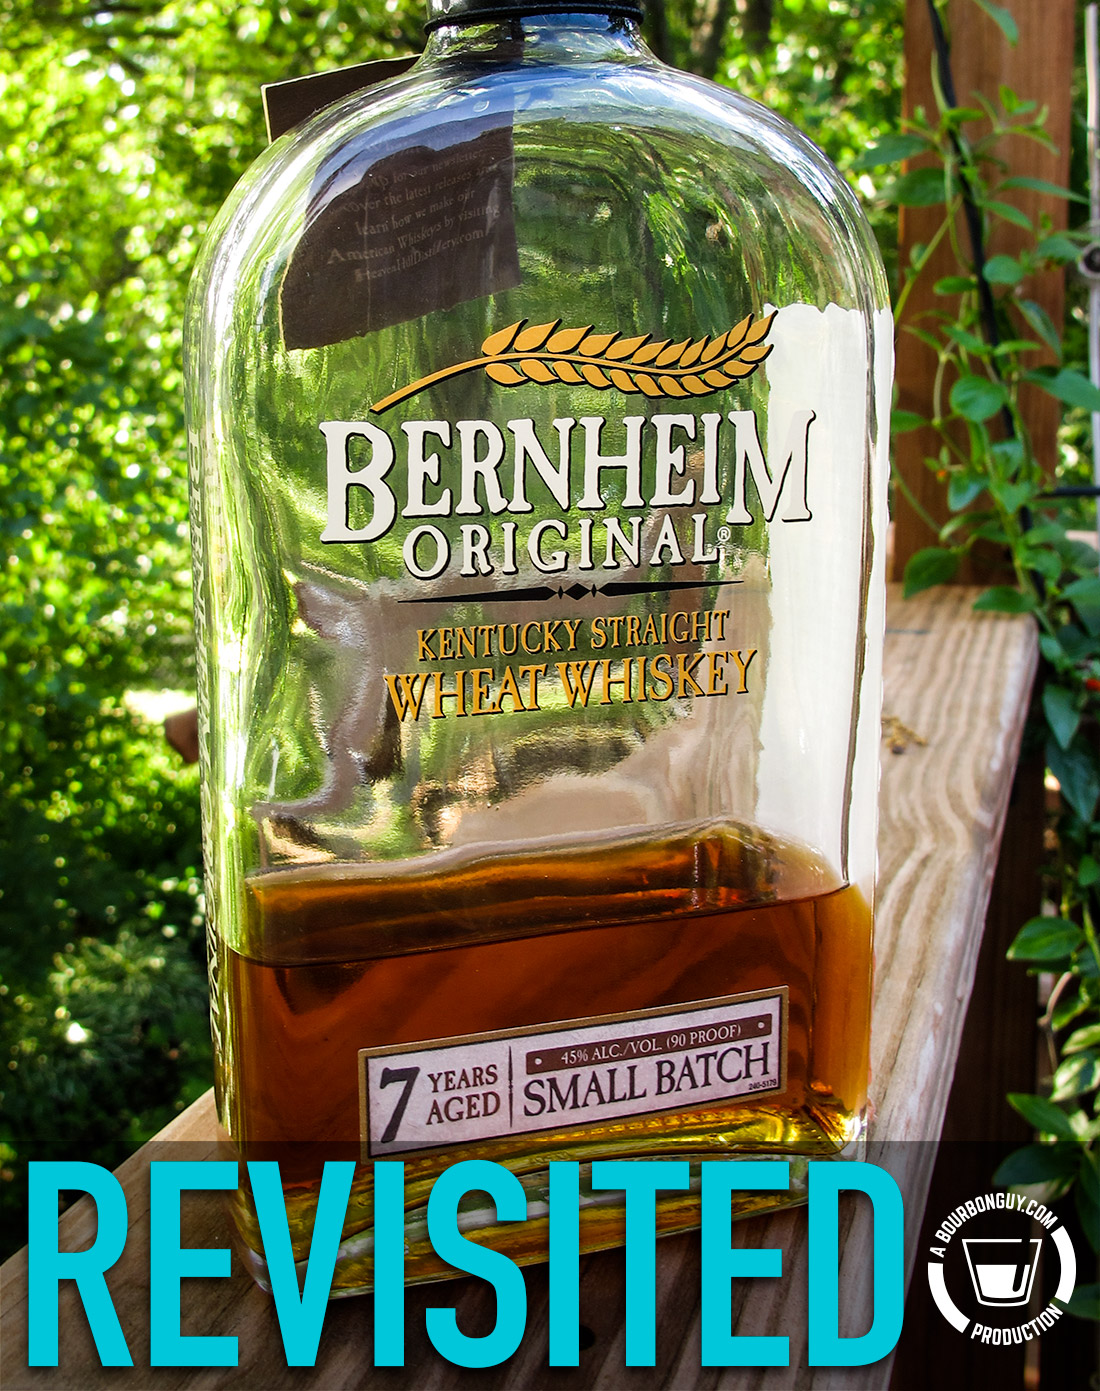 IMAGE: the front label of a bottle of Bernheim Original Kentucky Straight Wheat Whiskey